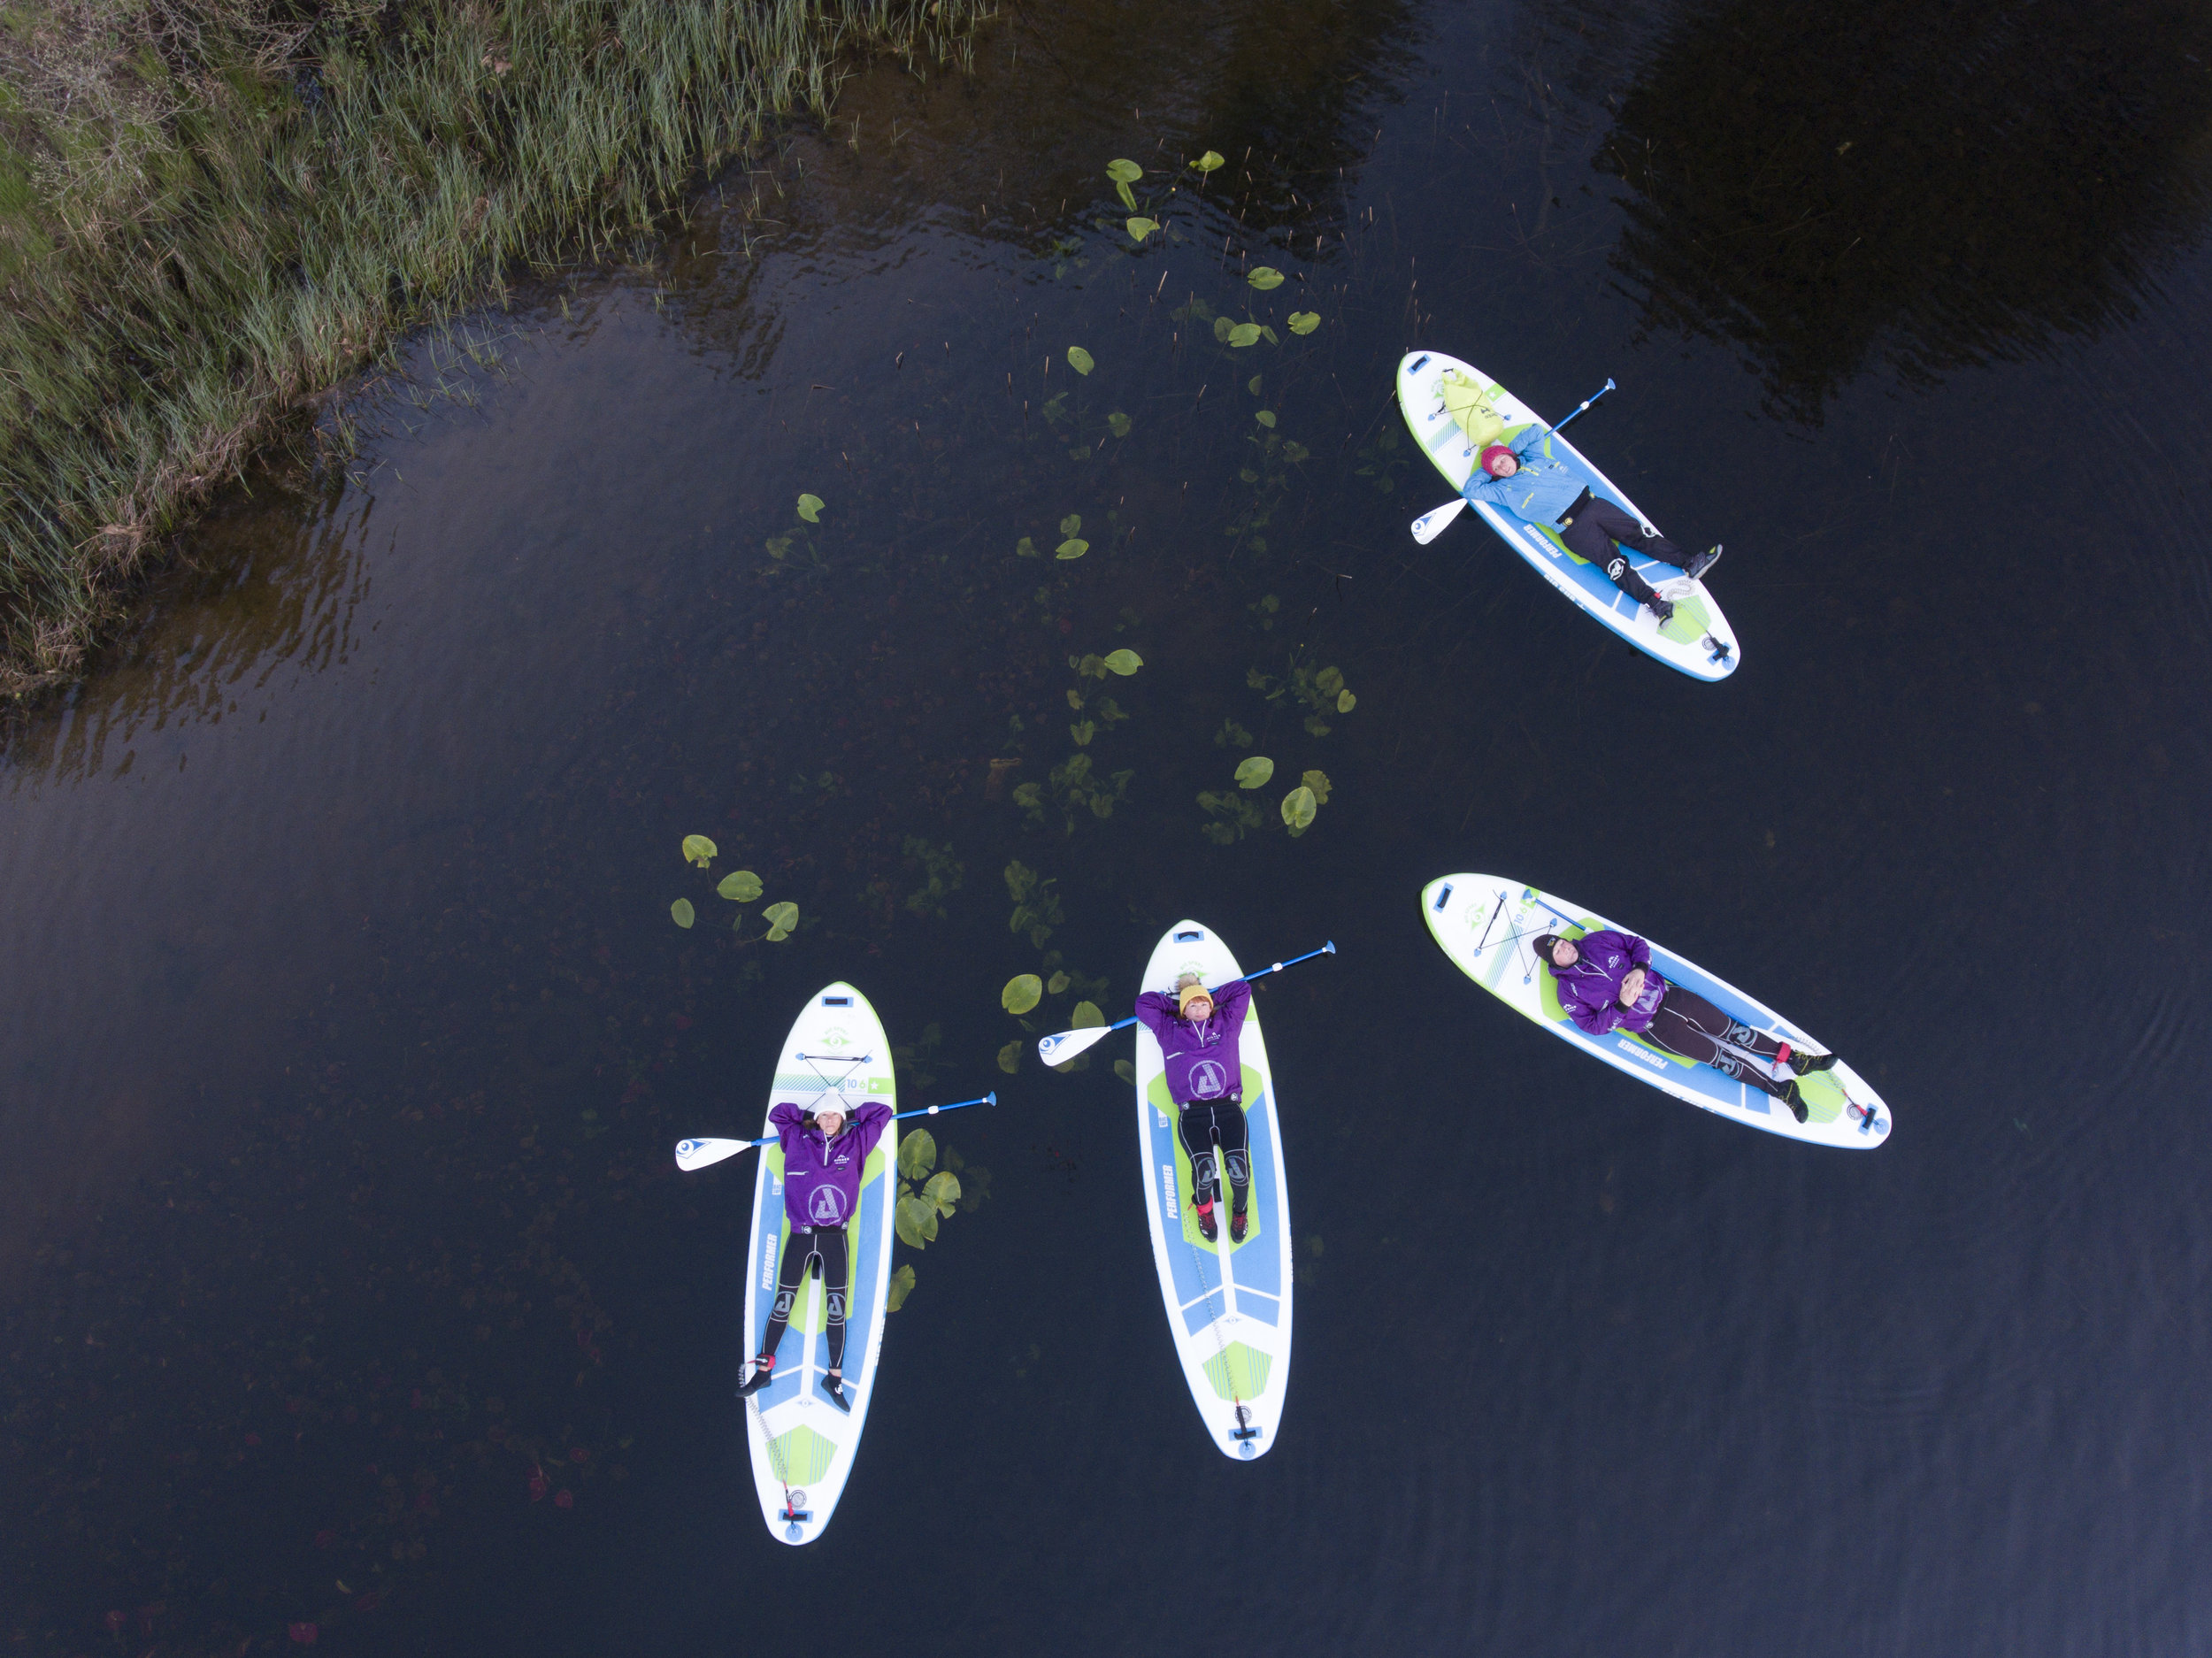 Floating around on the water lilies   Night SUP   Psyched Paddleboarding  